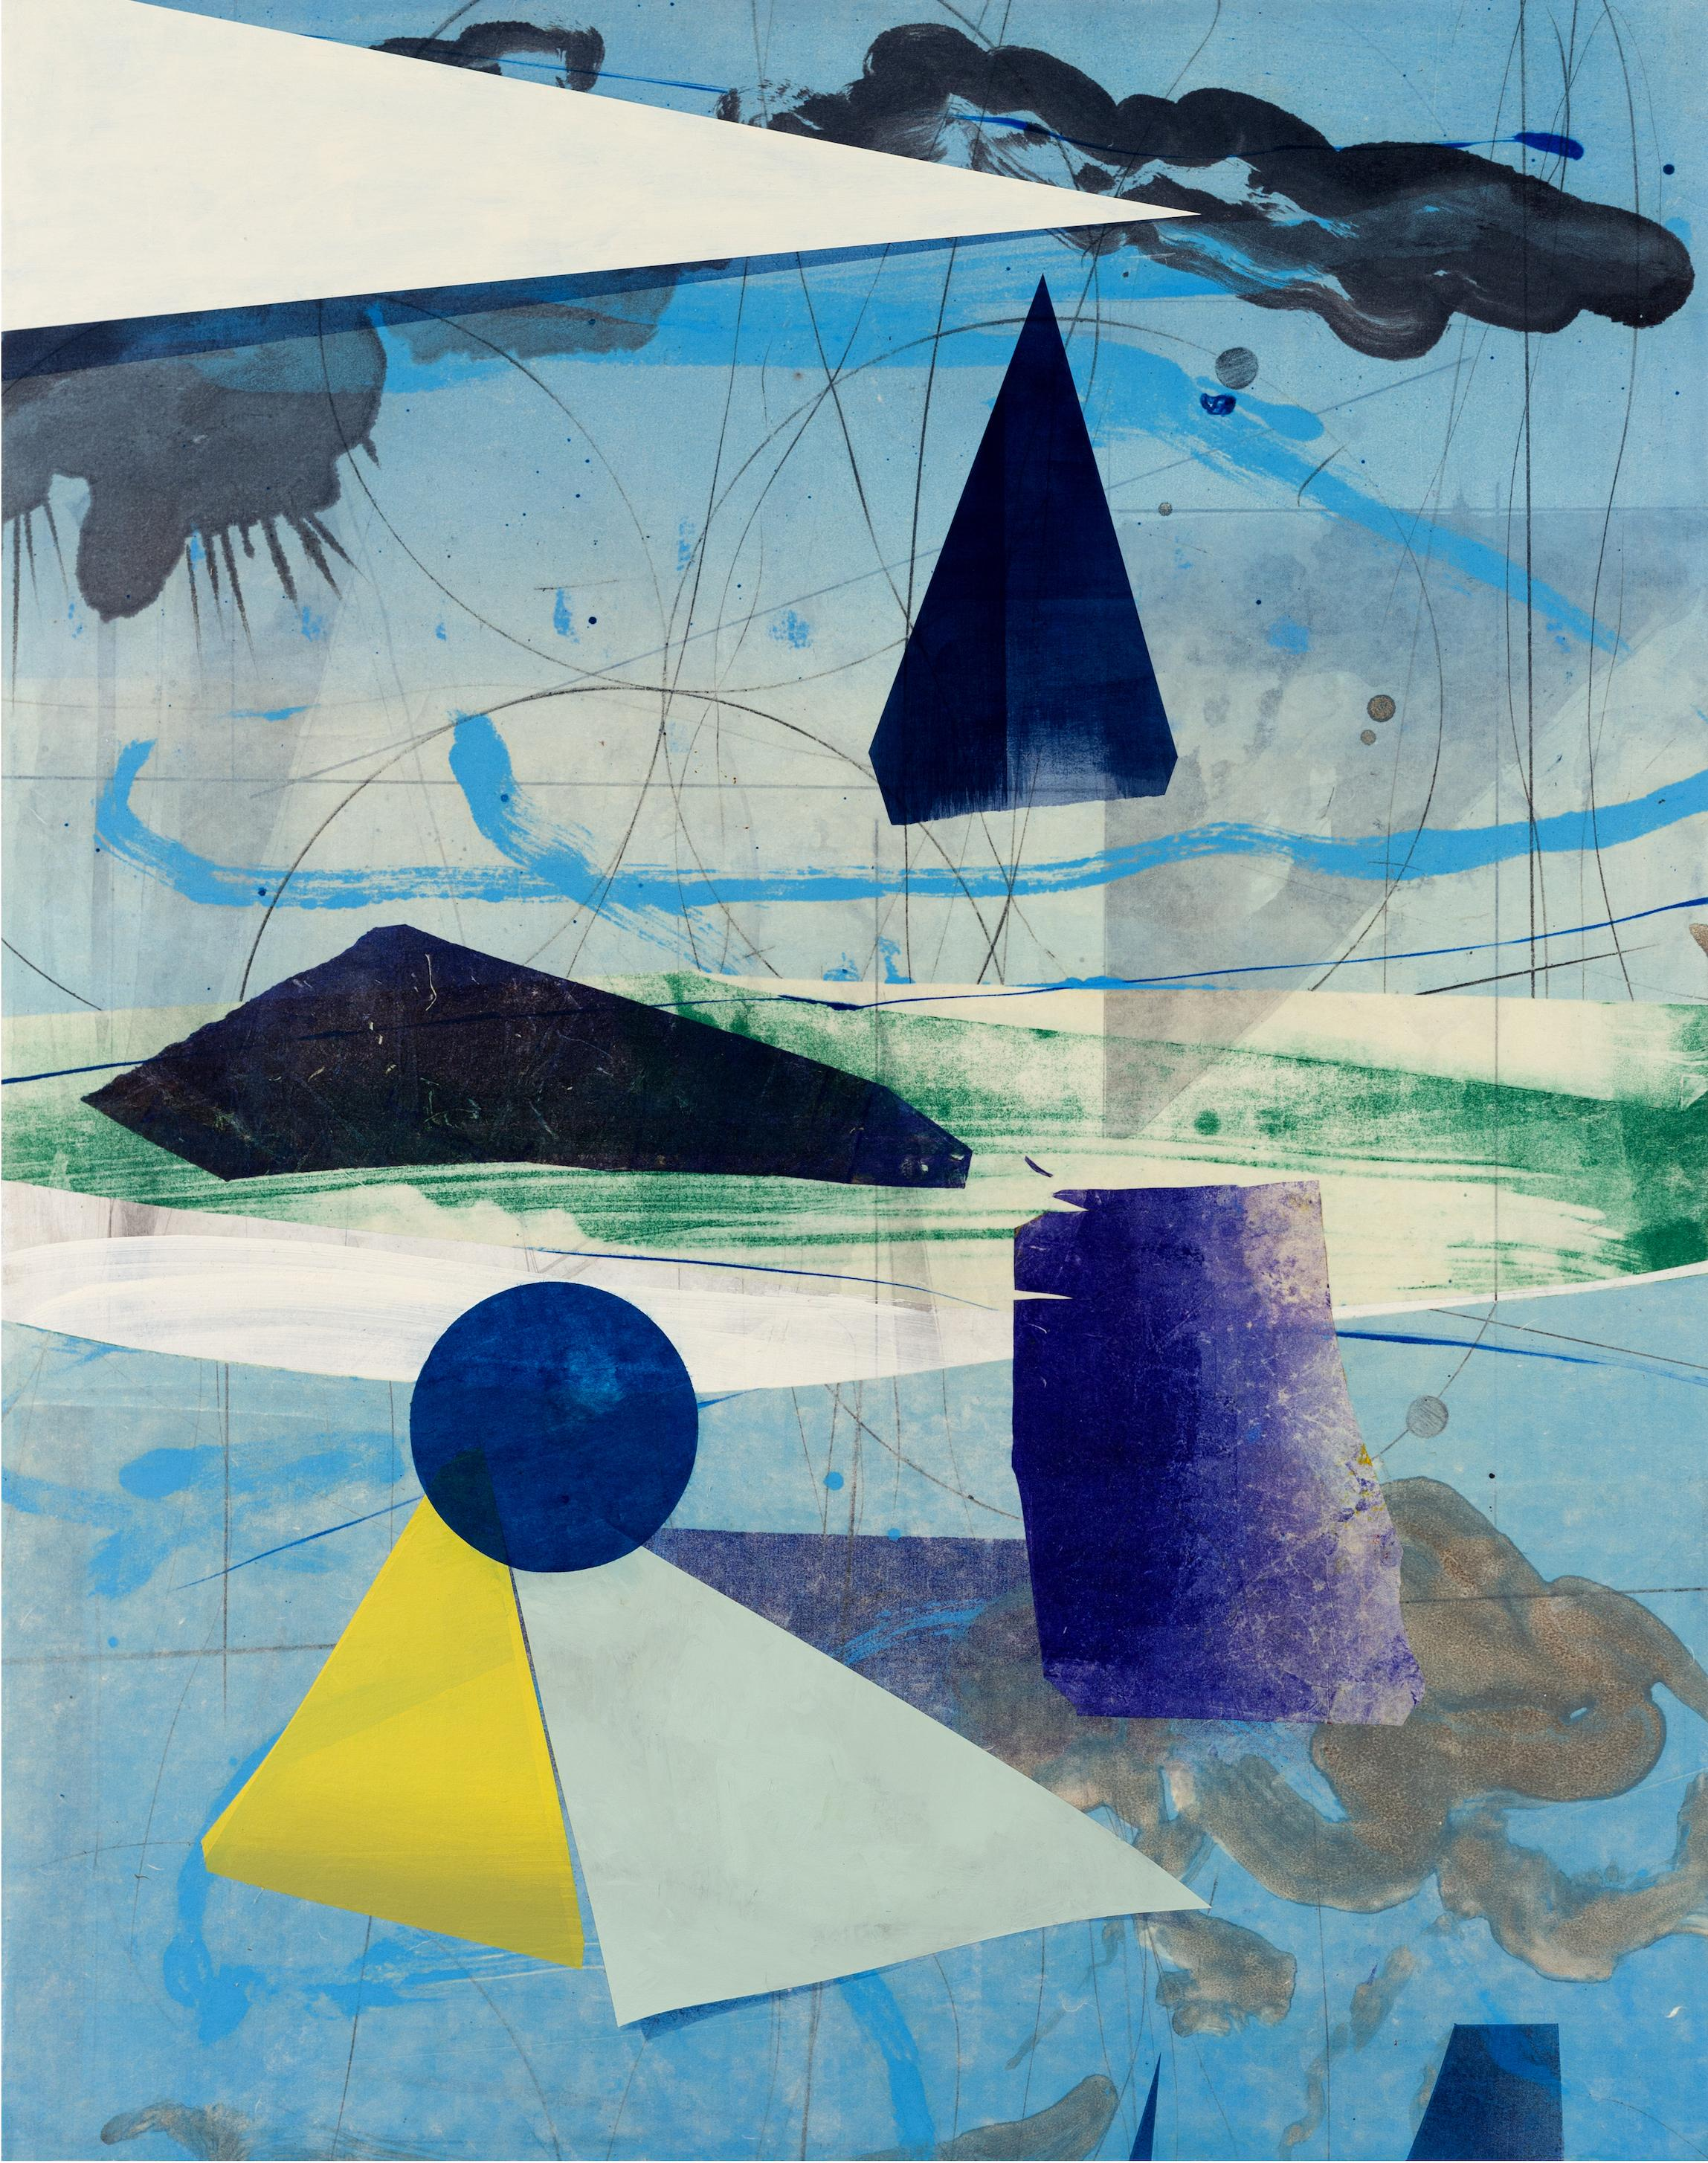 Transfer Meridian One, Vertical Abstract Geometric Painting, Blue, Green, Yellow